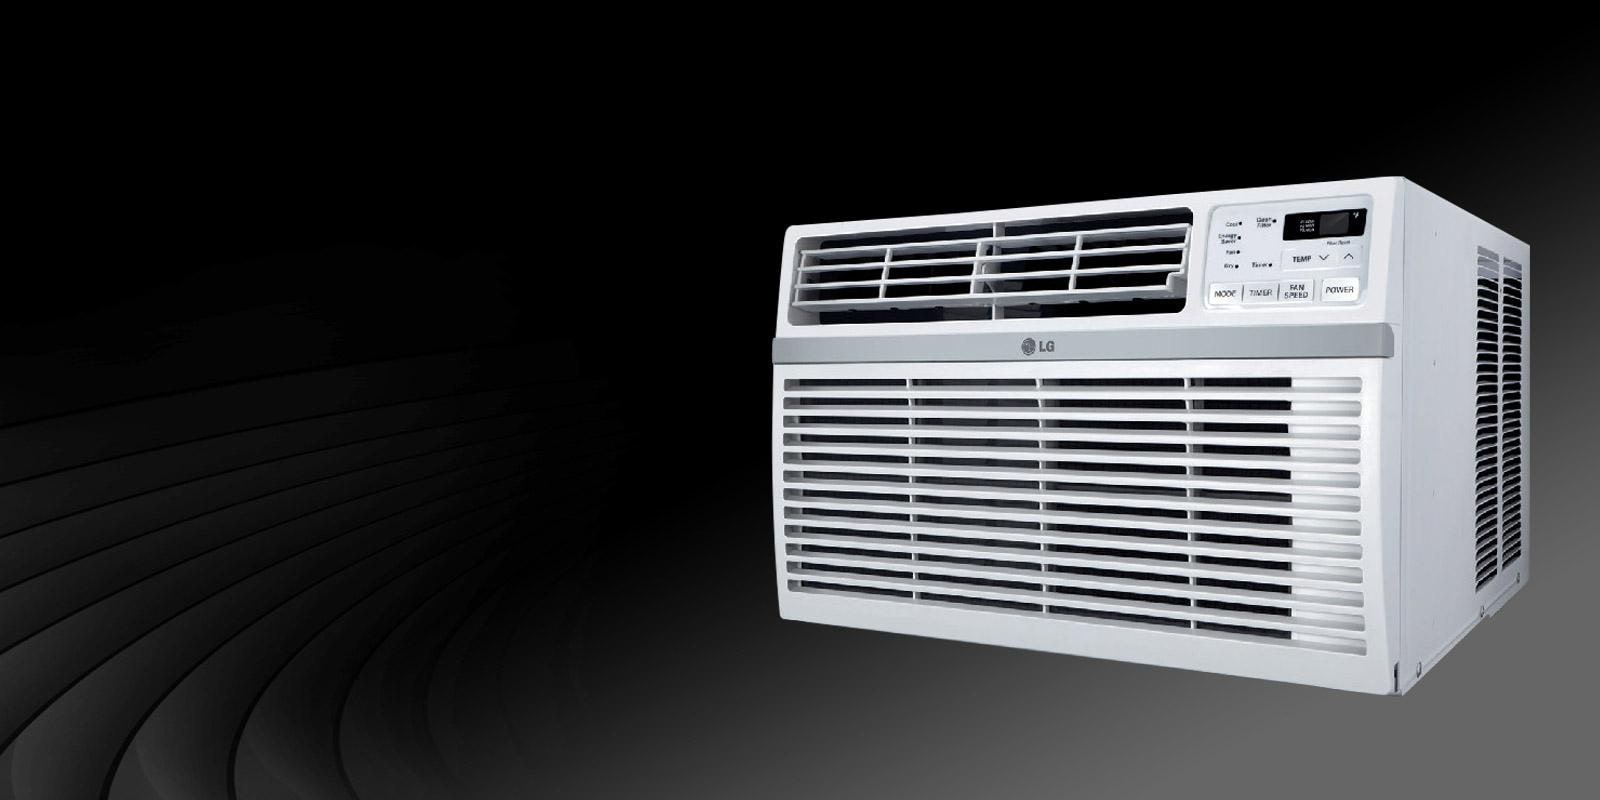 Image Gallery: Hd air conditioning #5A6371